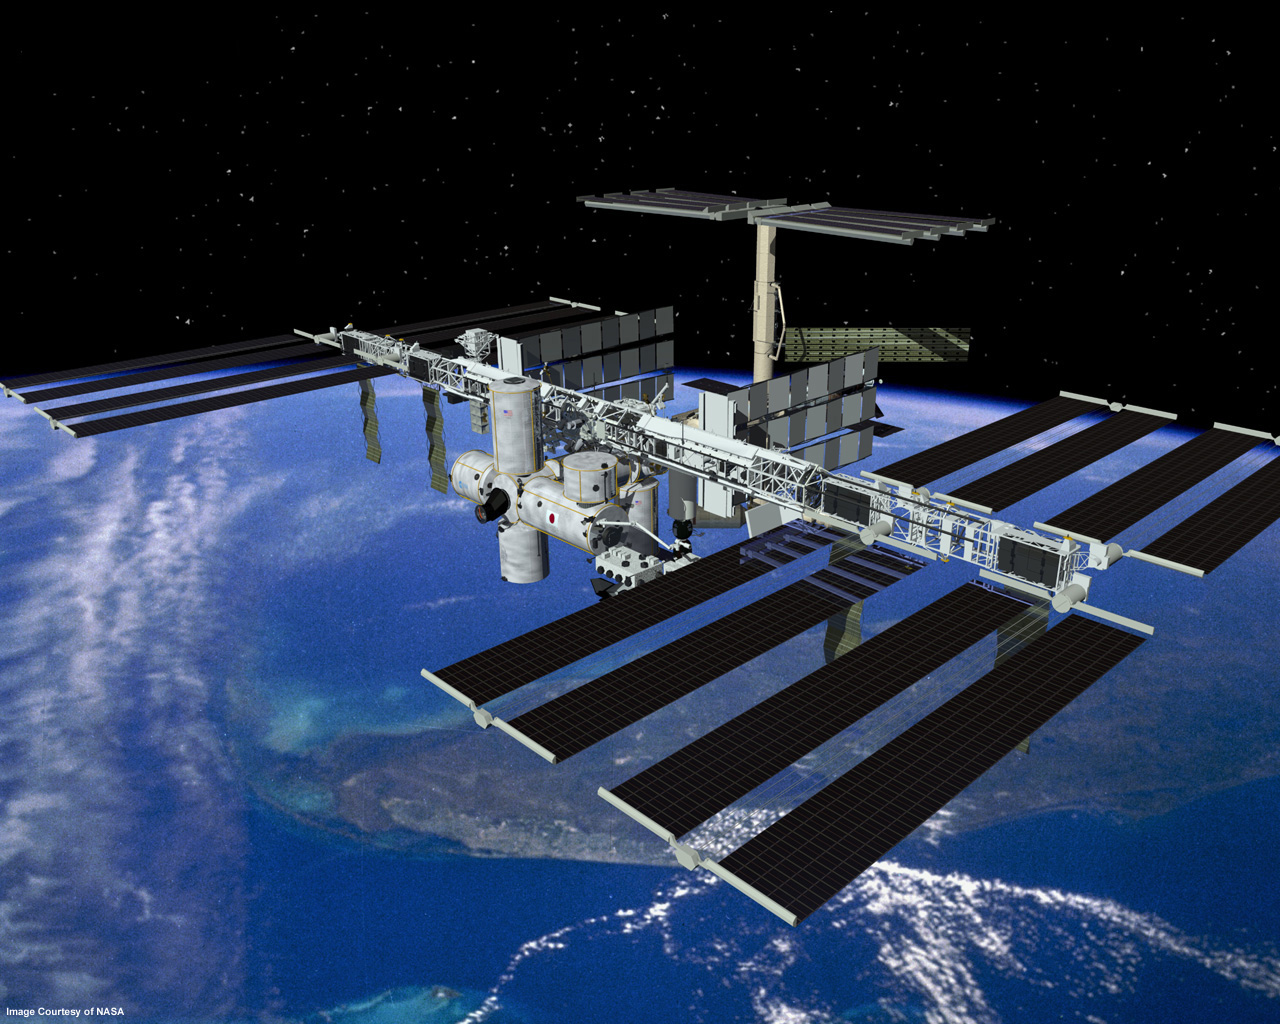 Hd Image Of International Space Station Download   15x15 ...